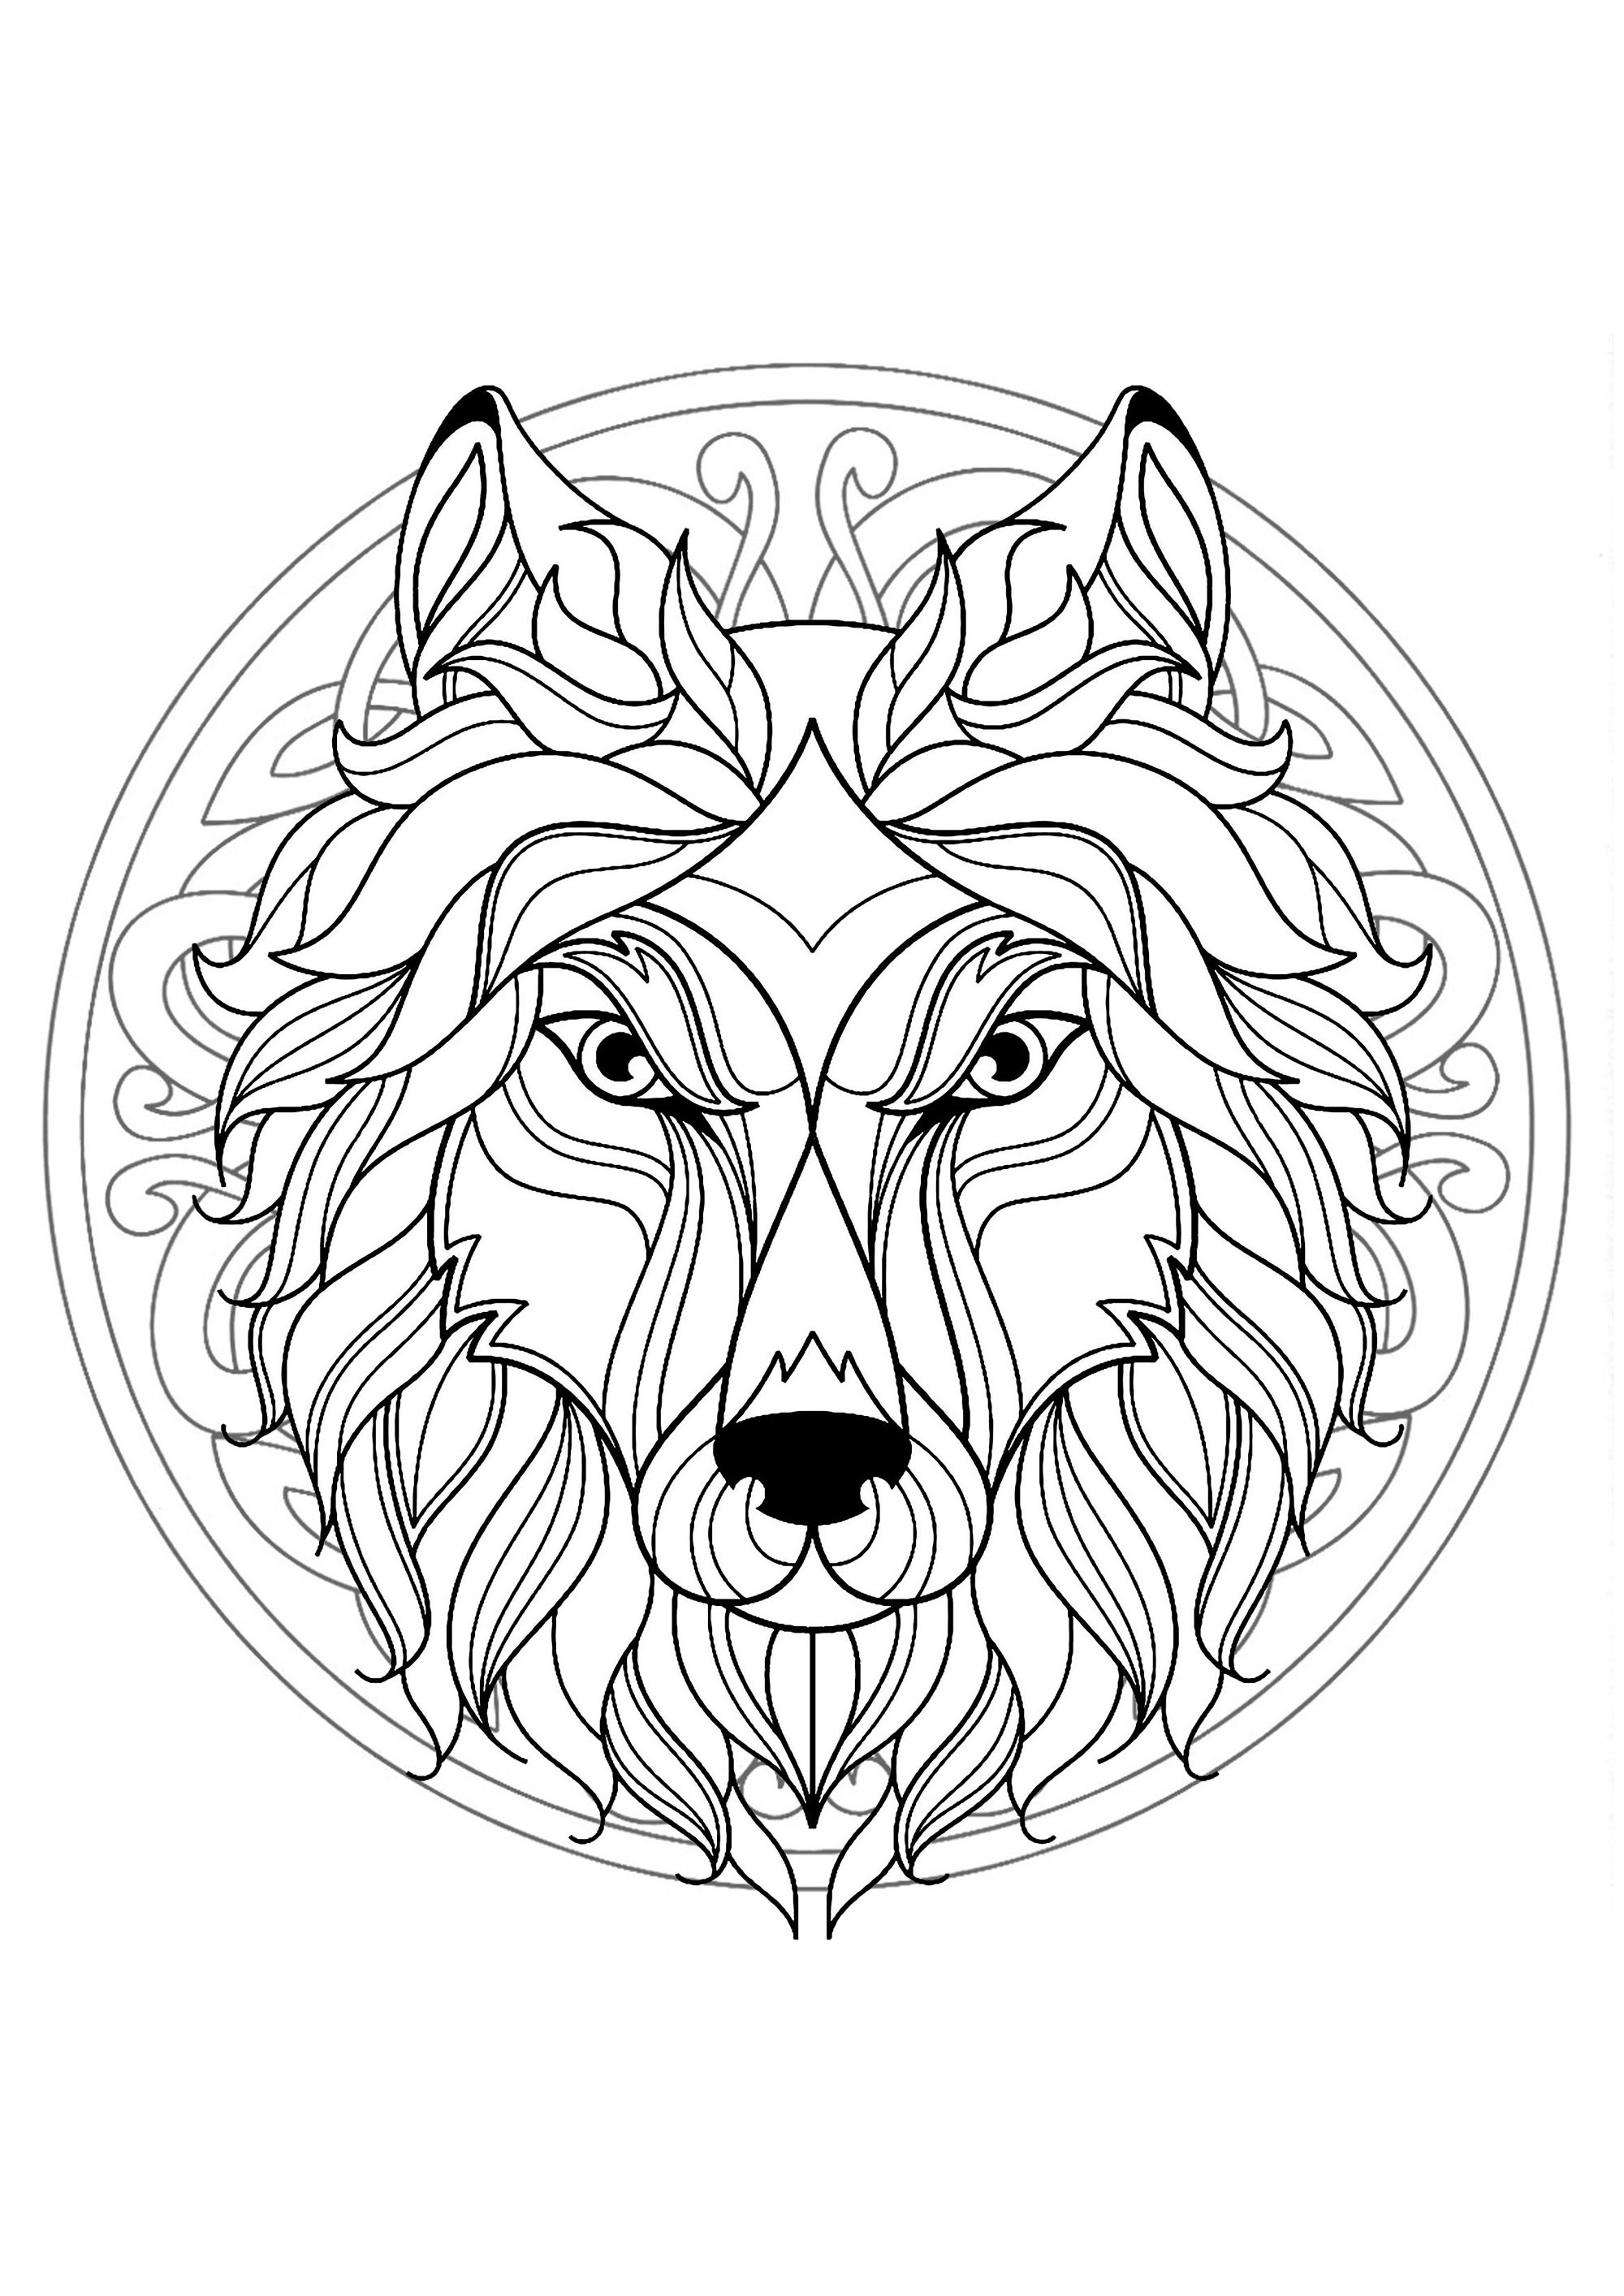 mandala with beautiful wolf head and interlaced patterns m alas adult coloring pages. Black Bedroom Furniture Sets. Home Design Ideas